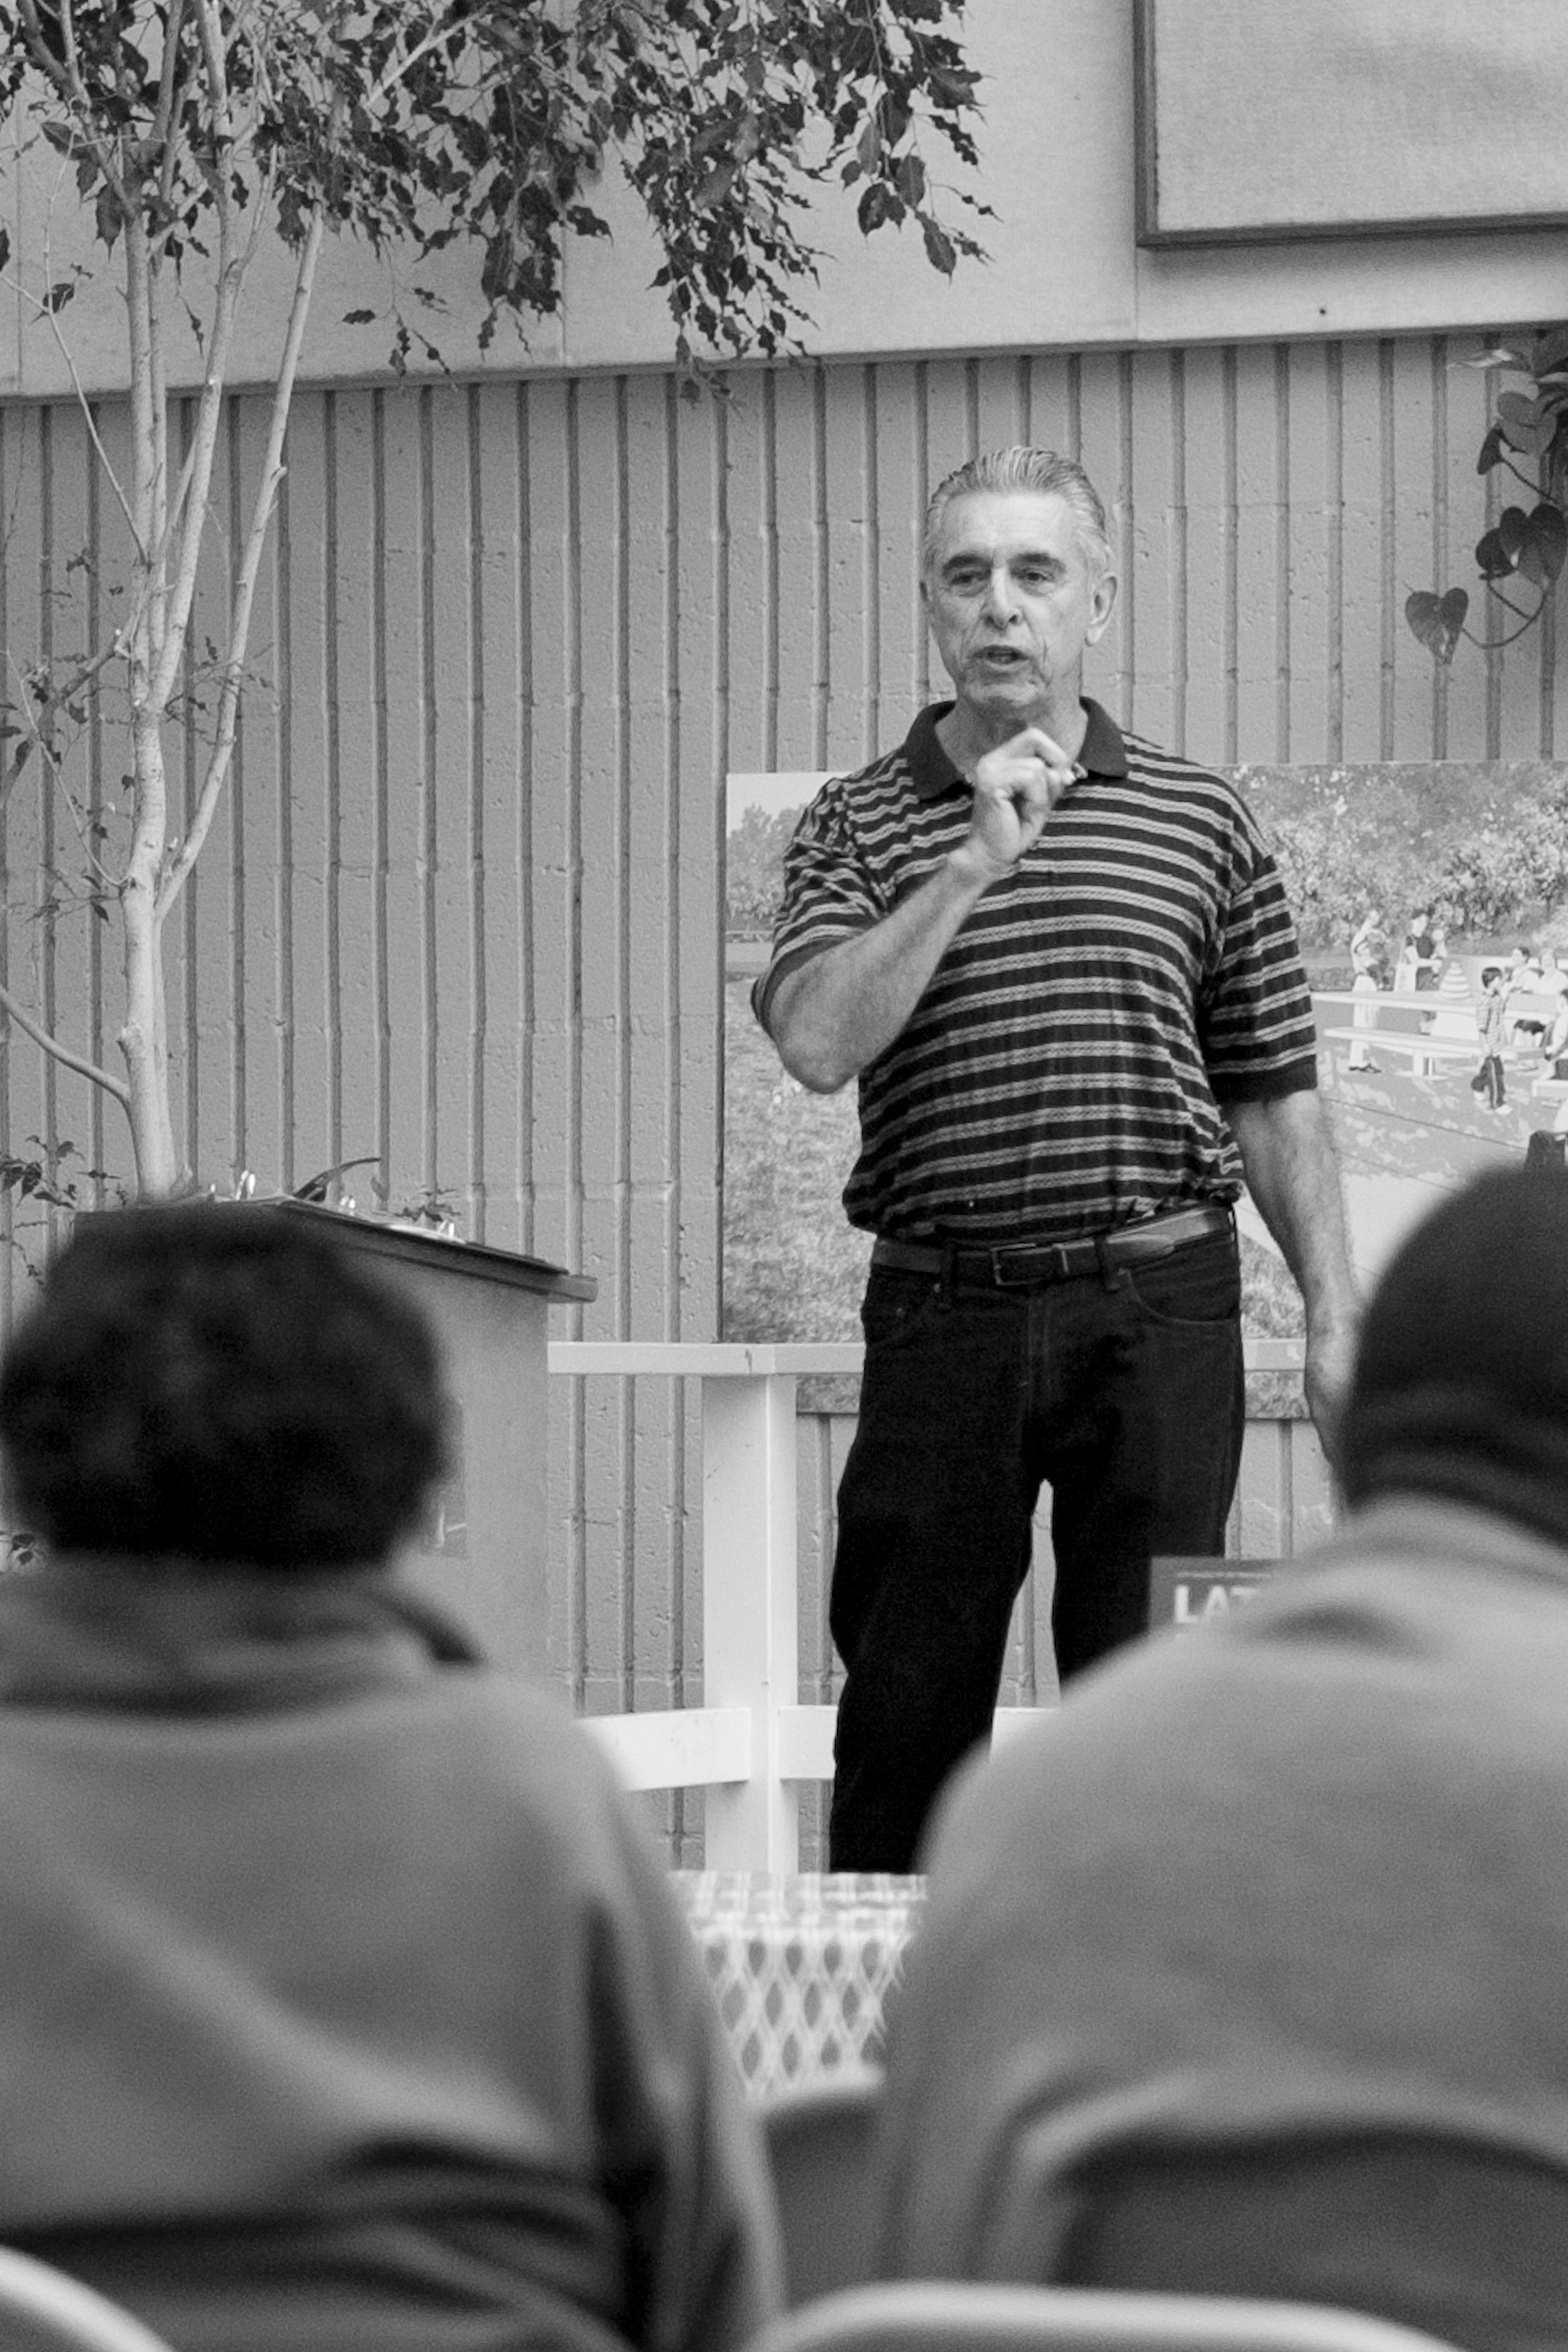 William Maynez, coordinator of The Diego Rivera Mural Project and former City College physics lab manager speaks about Diego Rivera and his wife Frida Kahlo, during a slideshow presentation recognizing Latina/Latino Heritage Month (Sept. 15 - Oct. 15) at City College's South East Campus on Tuesday, Sept. 25. Maynez compared/contrasted the works of Rivera and Kahlo, and identified social issues represented within their art. Photo by James Fanucchi/The Guardsman.